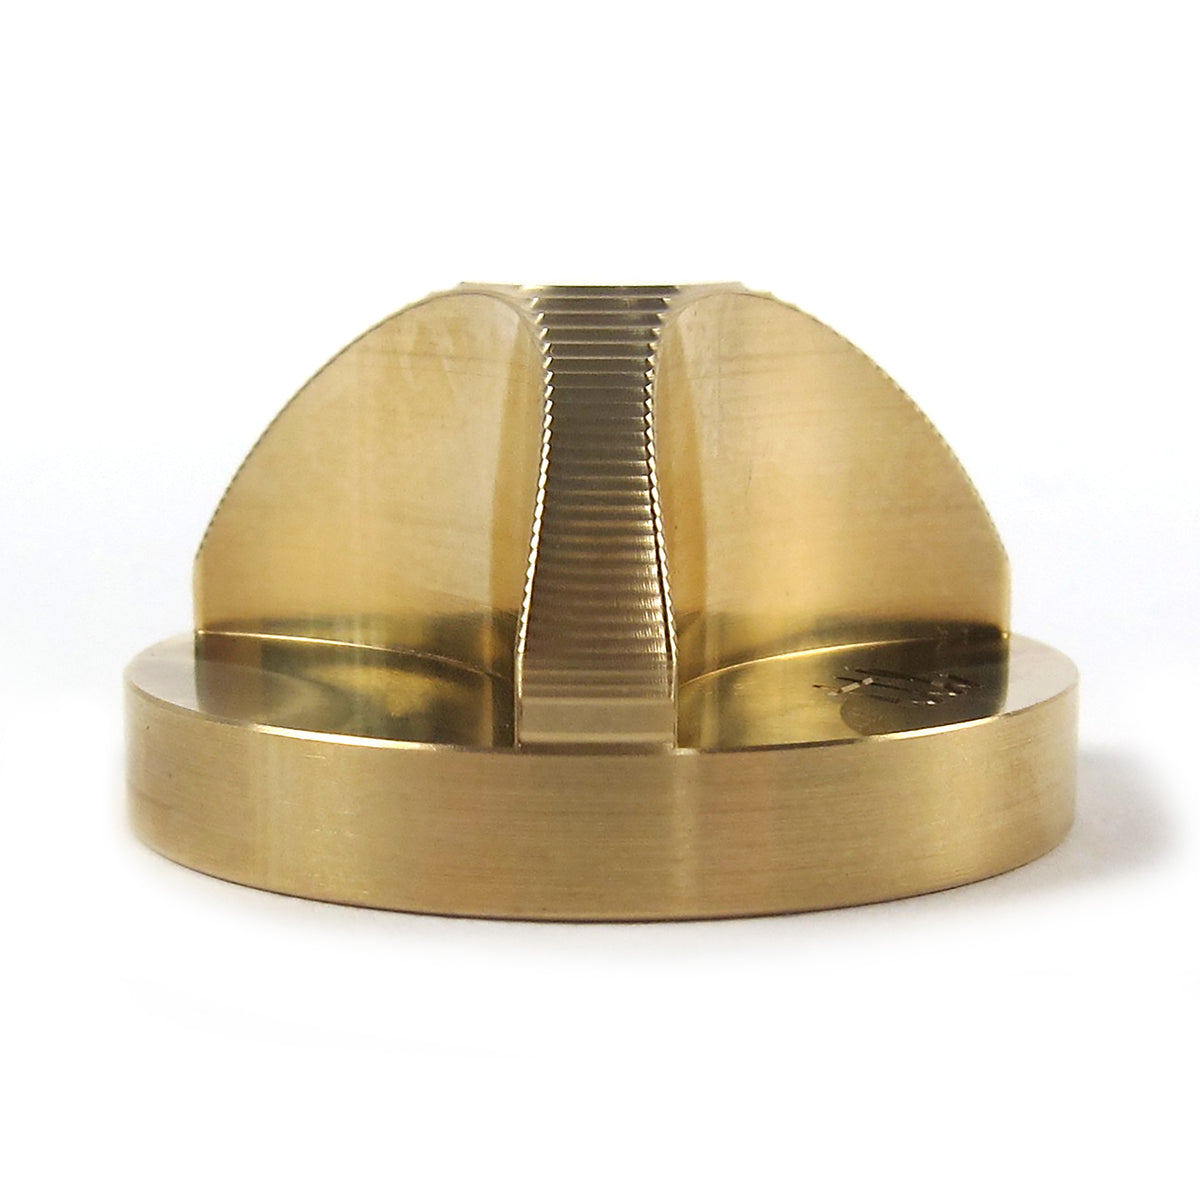 Union Products JP: 45 Adaptor Turntable Lab Edition - Raw Brass / Single